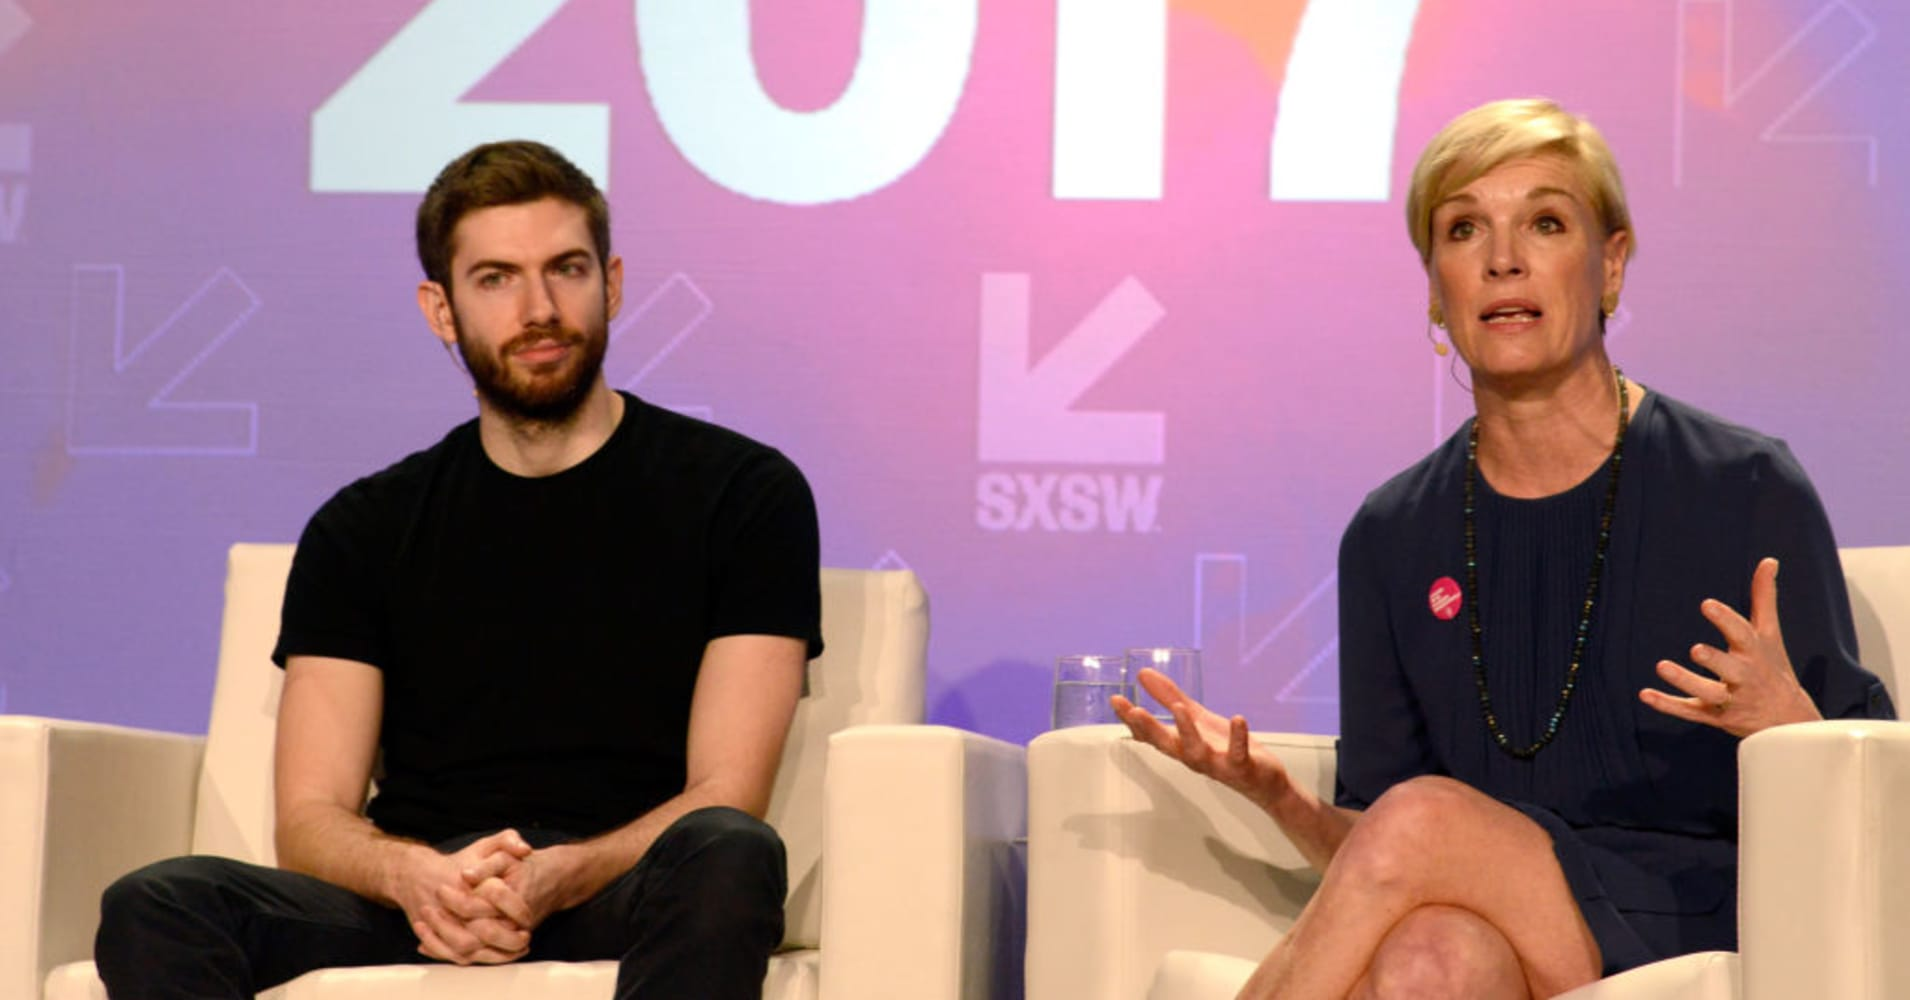 Tumblr CEO David Karp and President of Planned Parenthood Cecile Richards at SXSW.